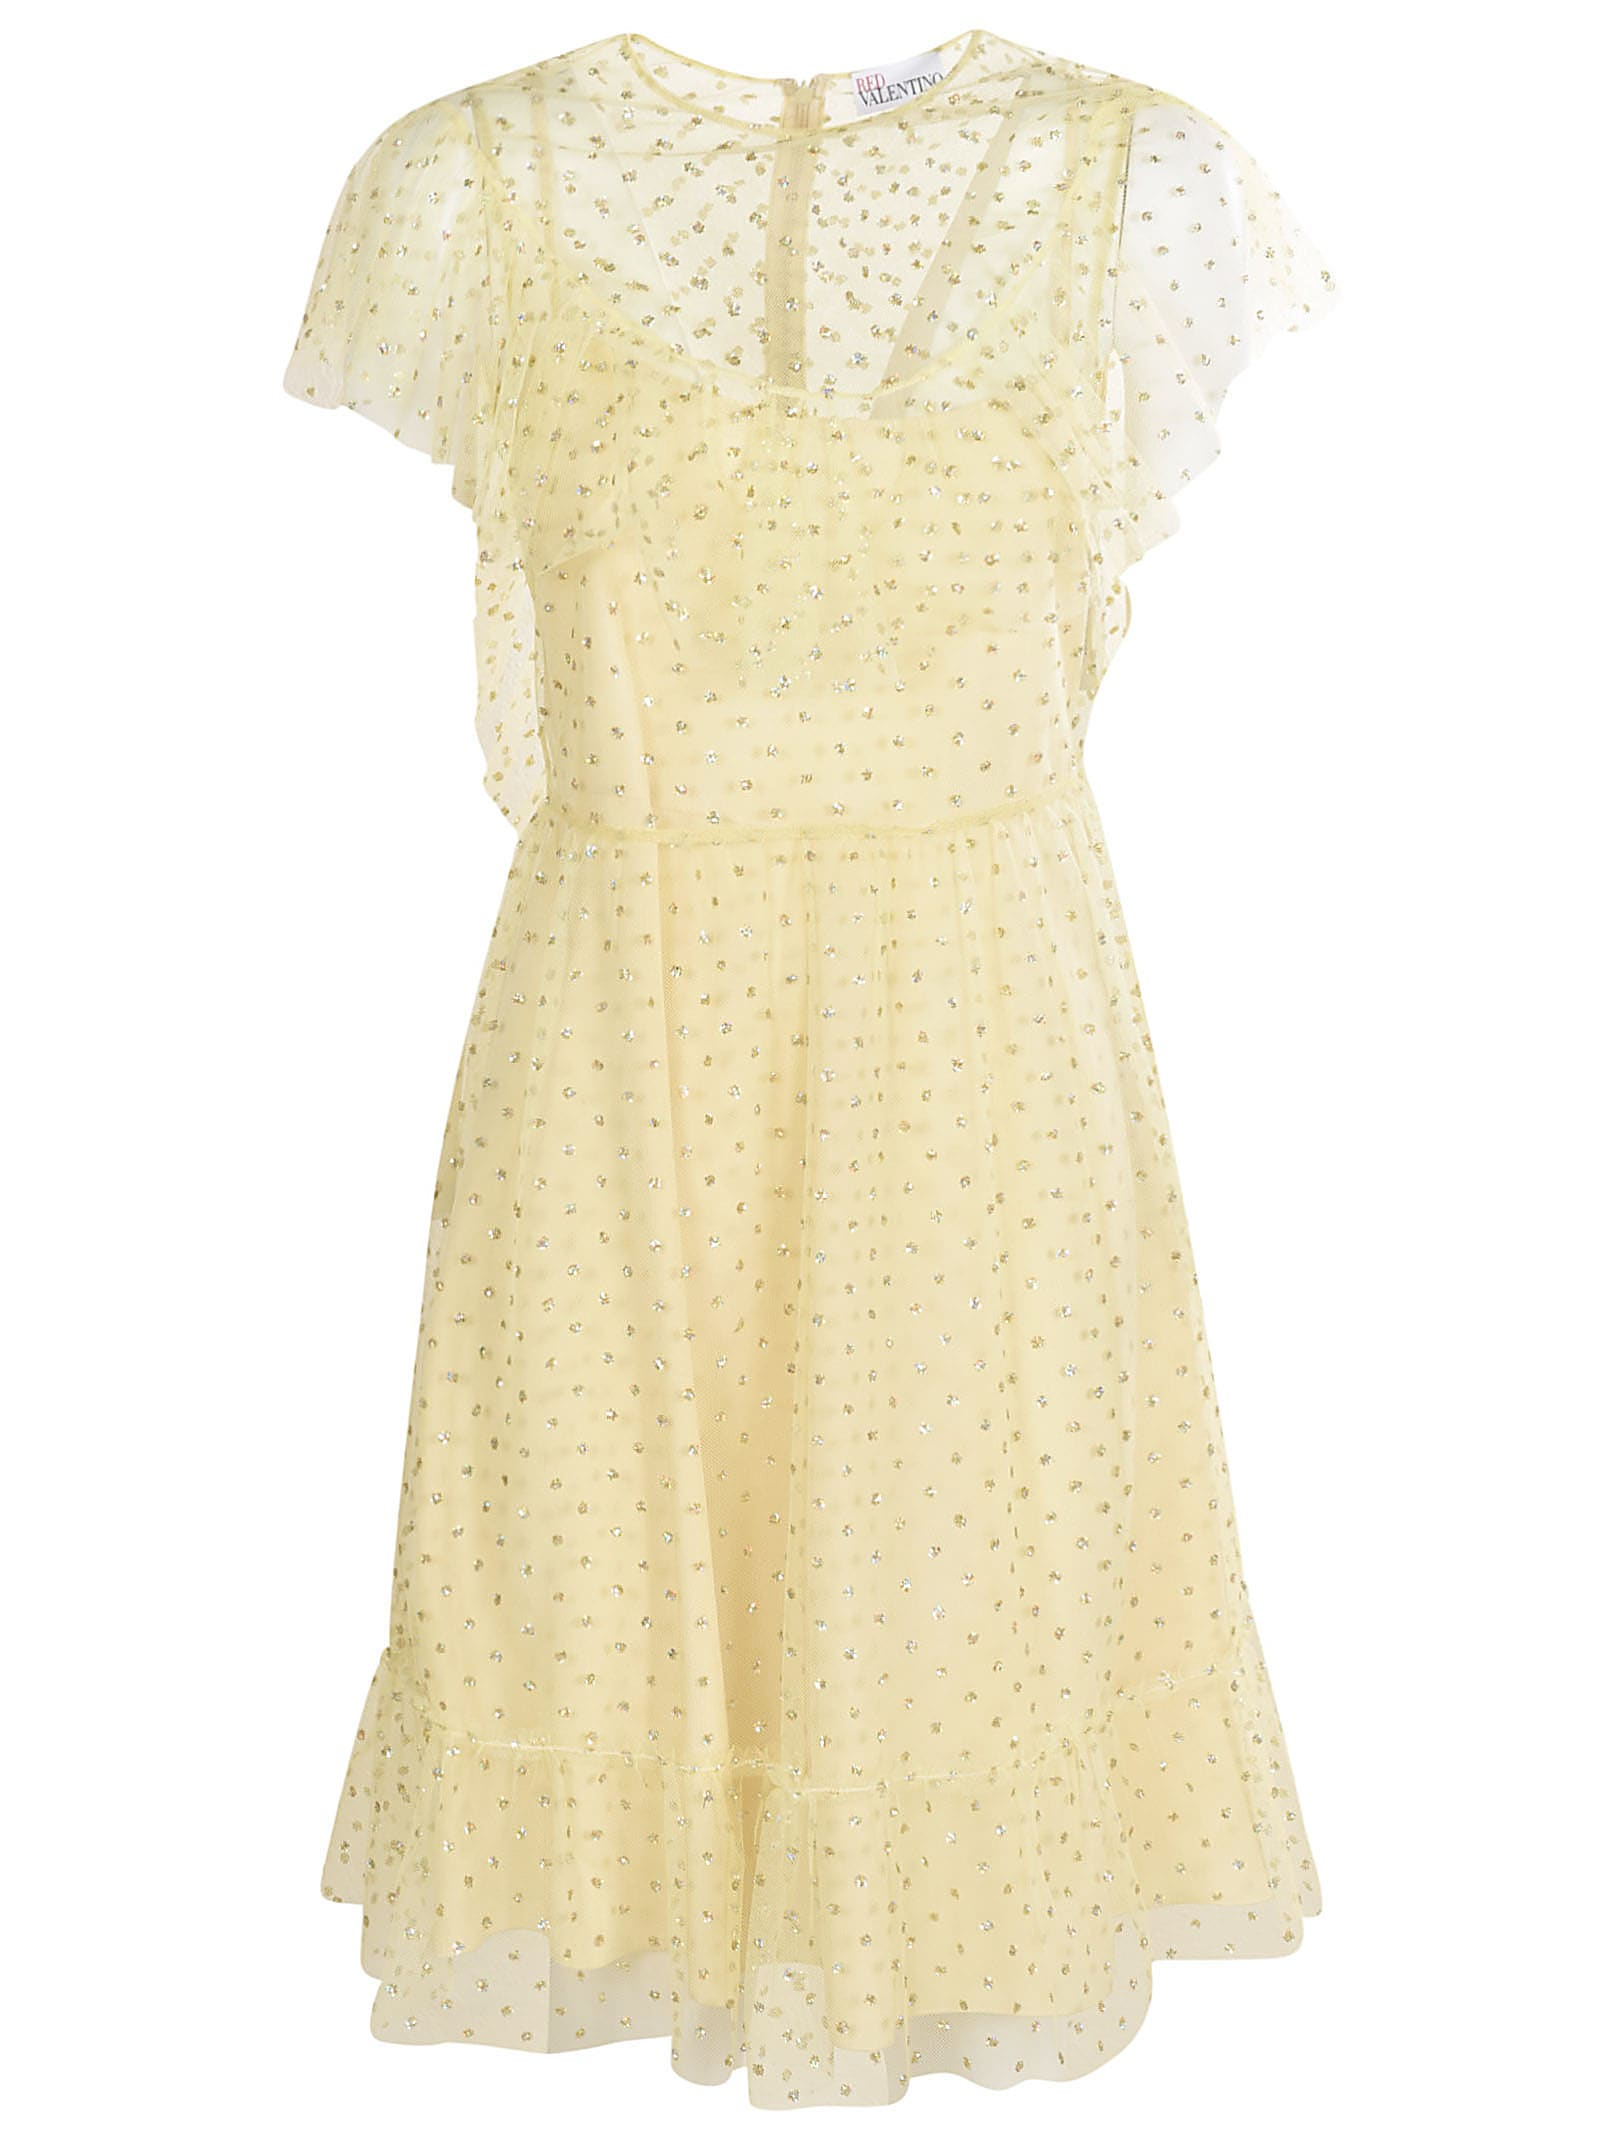 Buy RED Valentino Lace Embellished Dress online, shop RED Valentino with free shipping